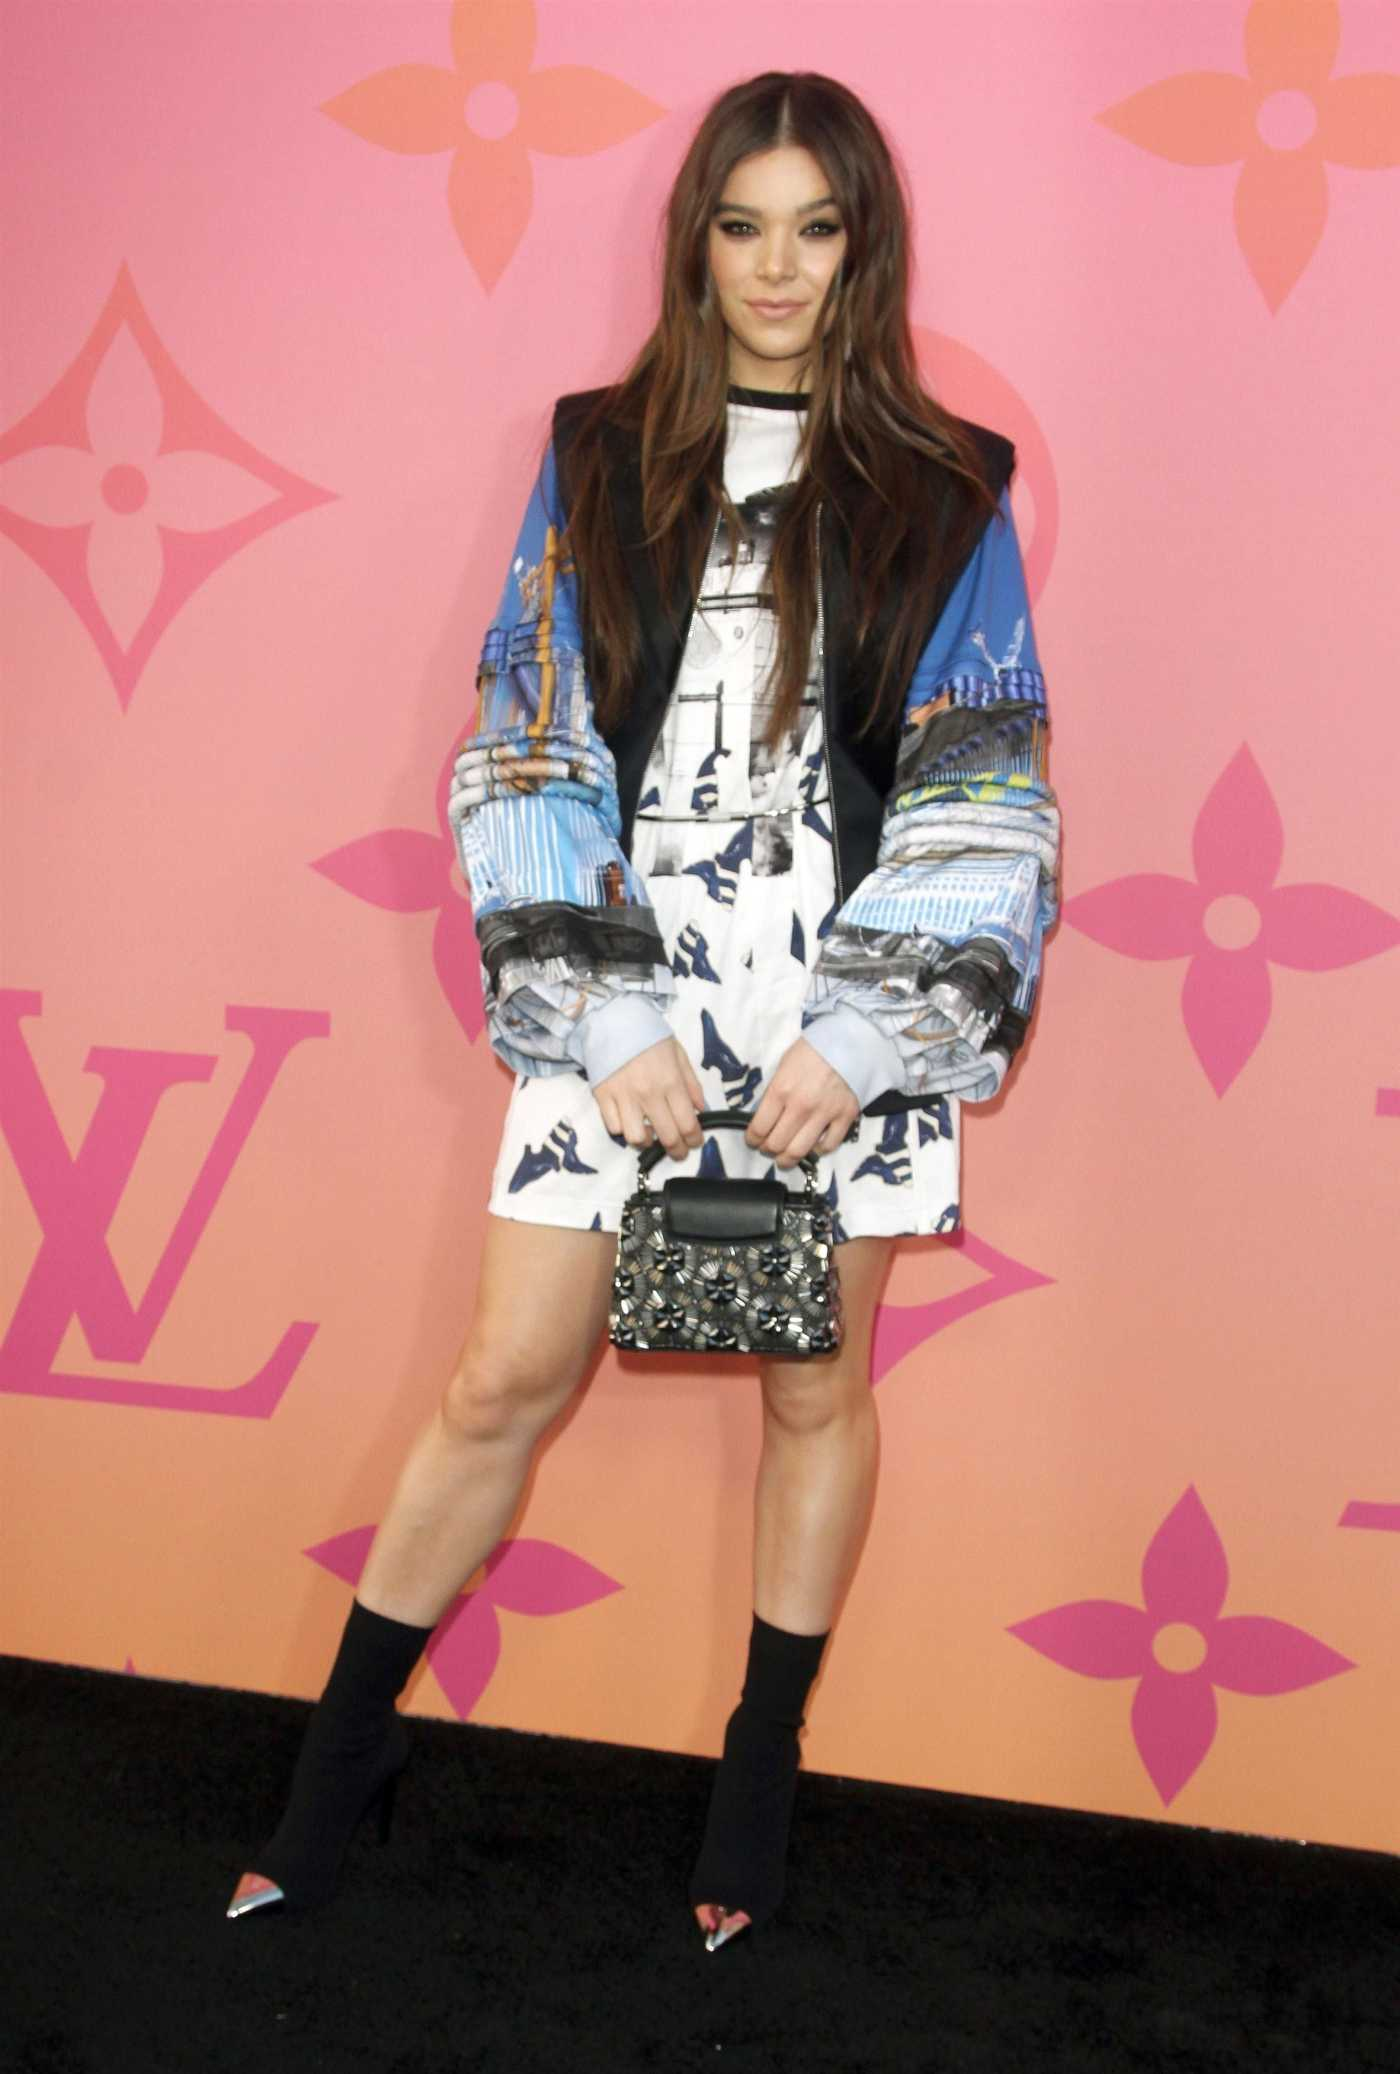 Hailee Steinfeld Attends the Louis Vuitton X Cocktail Party in Los Angeles 06/27/2019